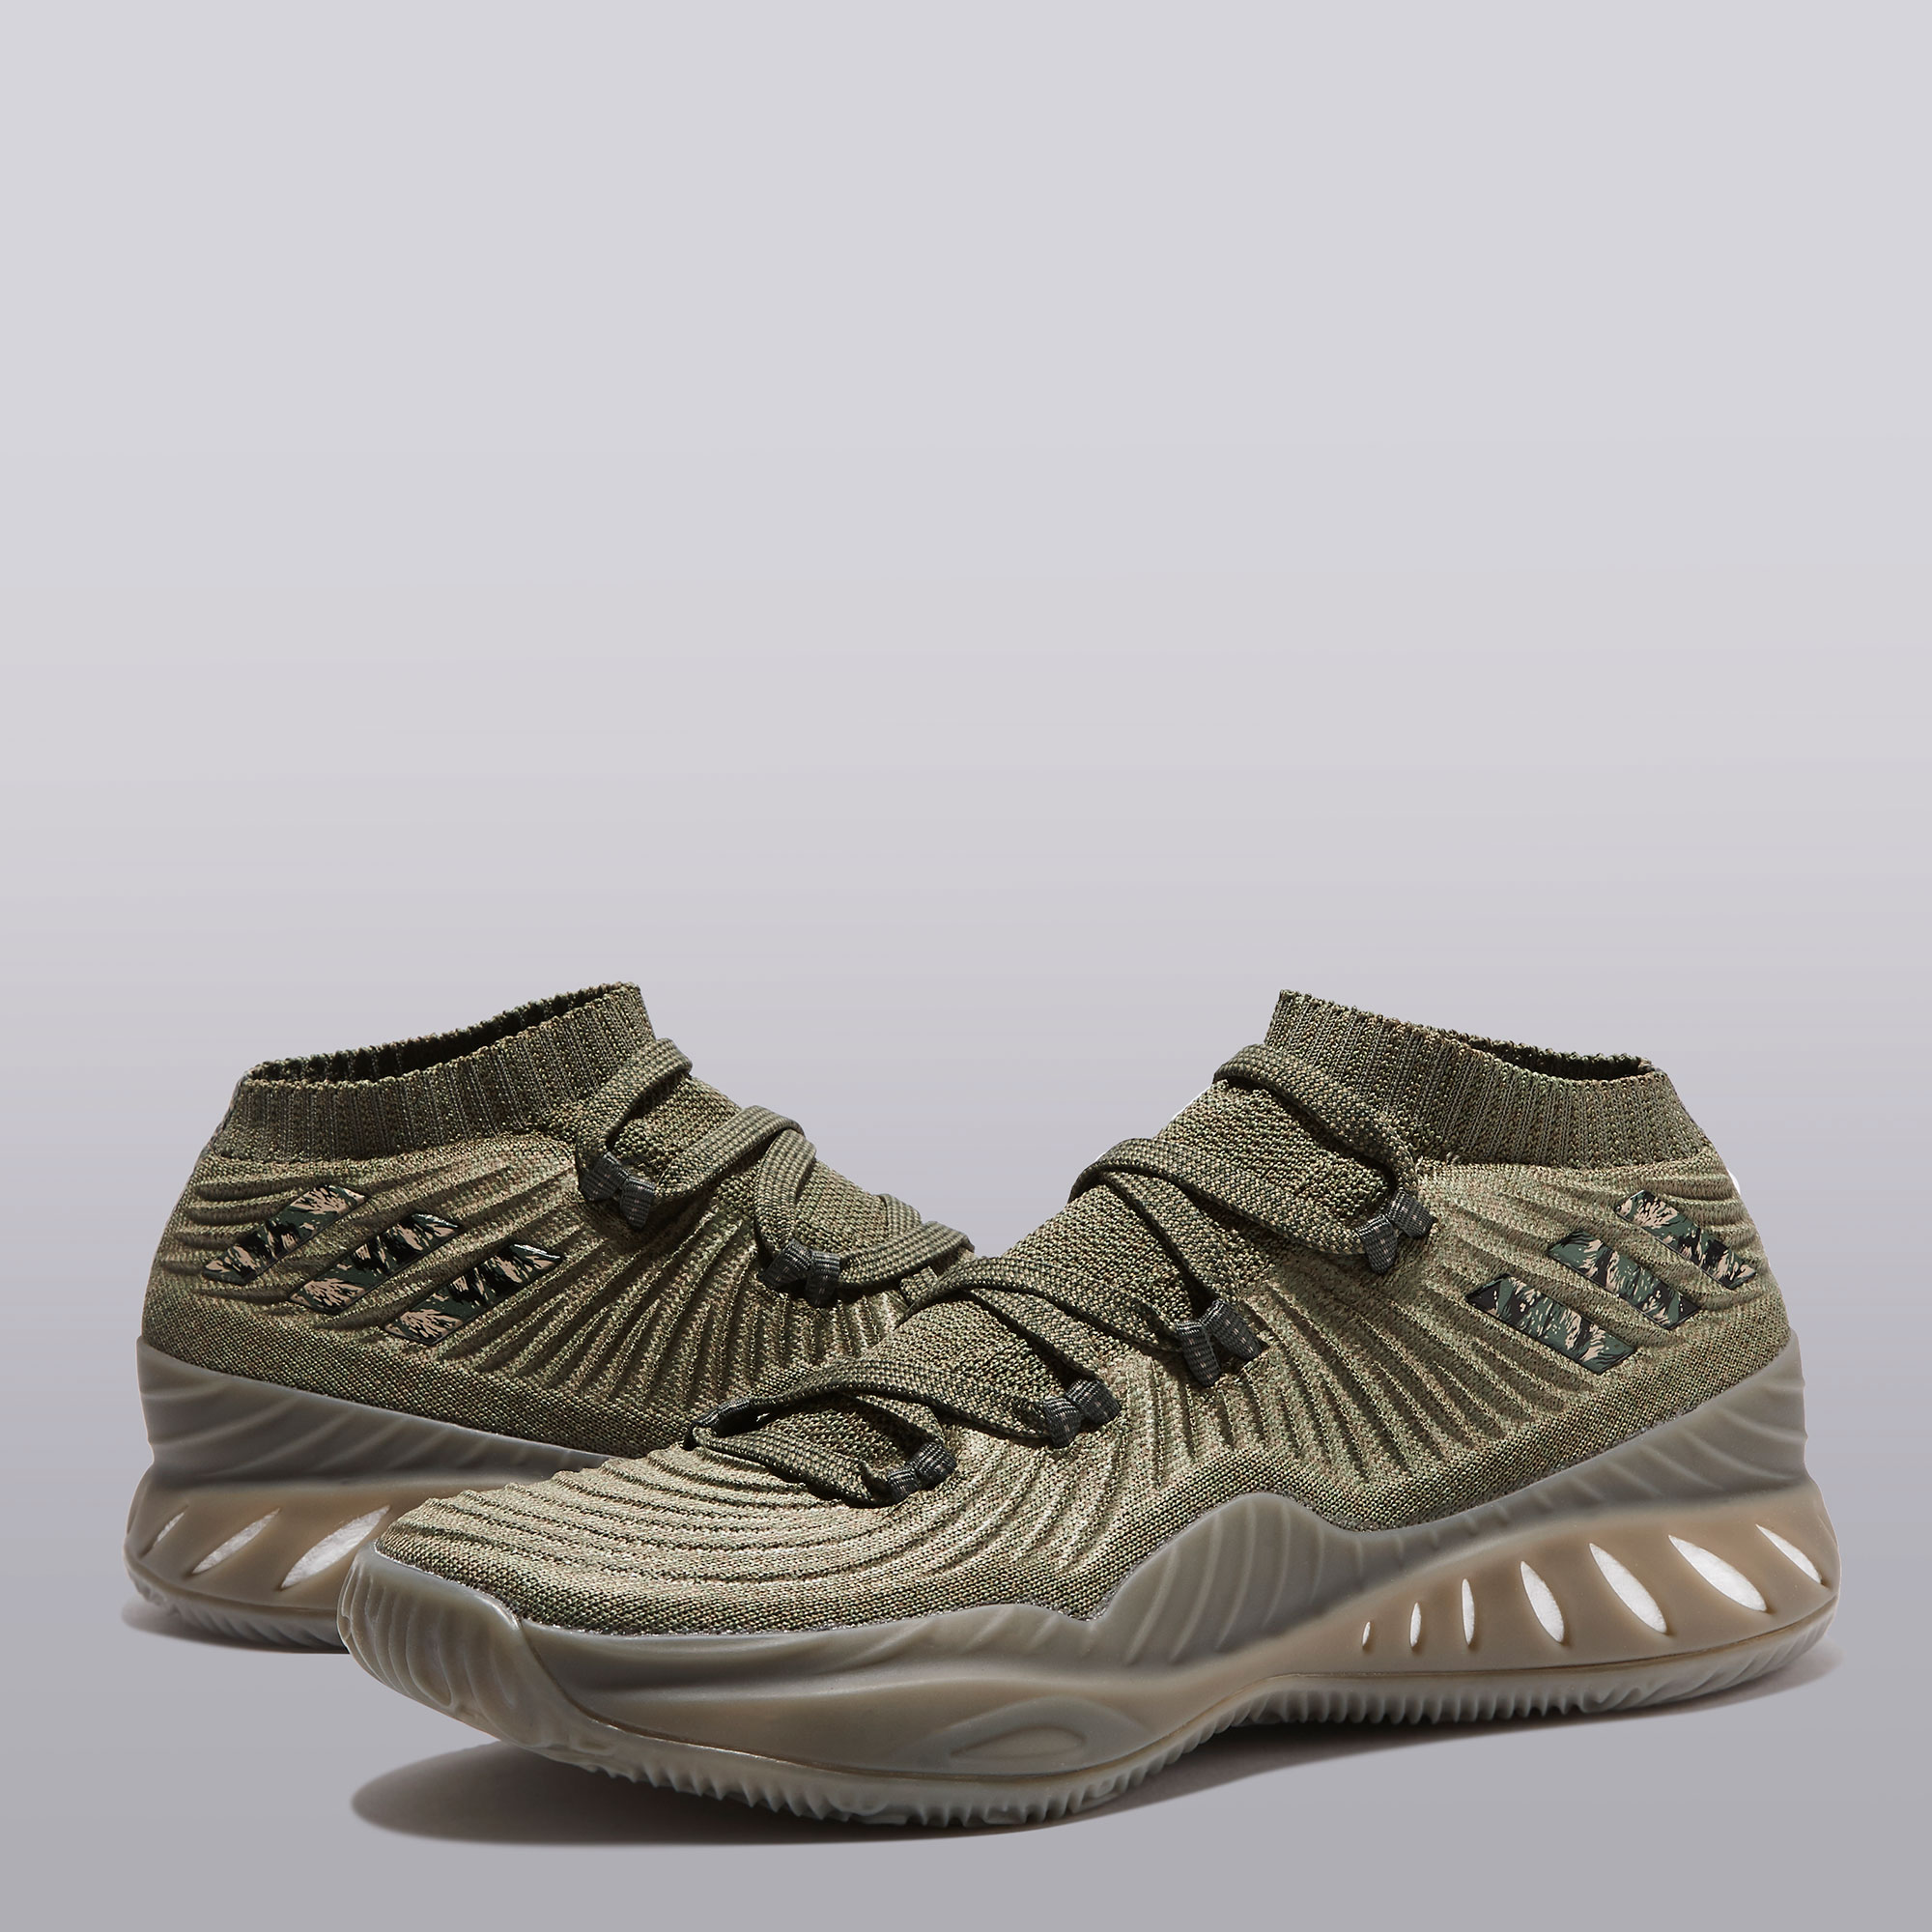 "Image of ""adidas Crazy Explosive Low Primeknit 2017 Basketball Shoe - Trace Cargo"""